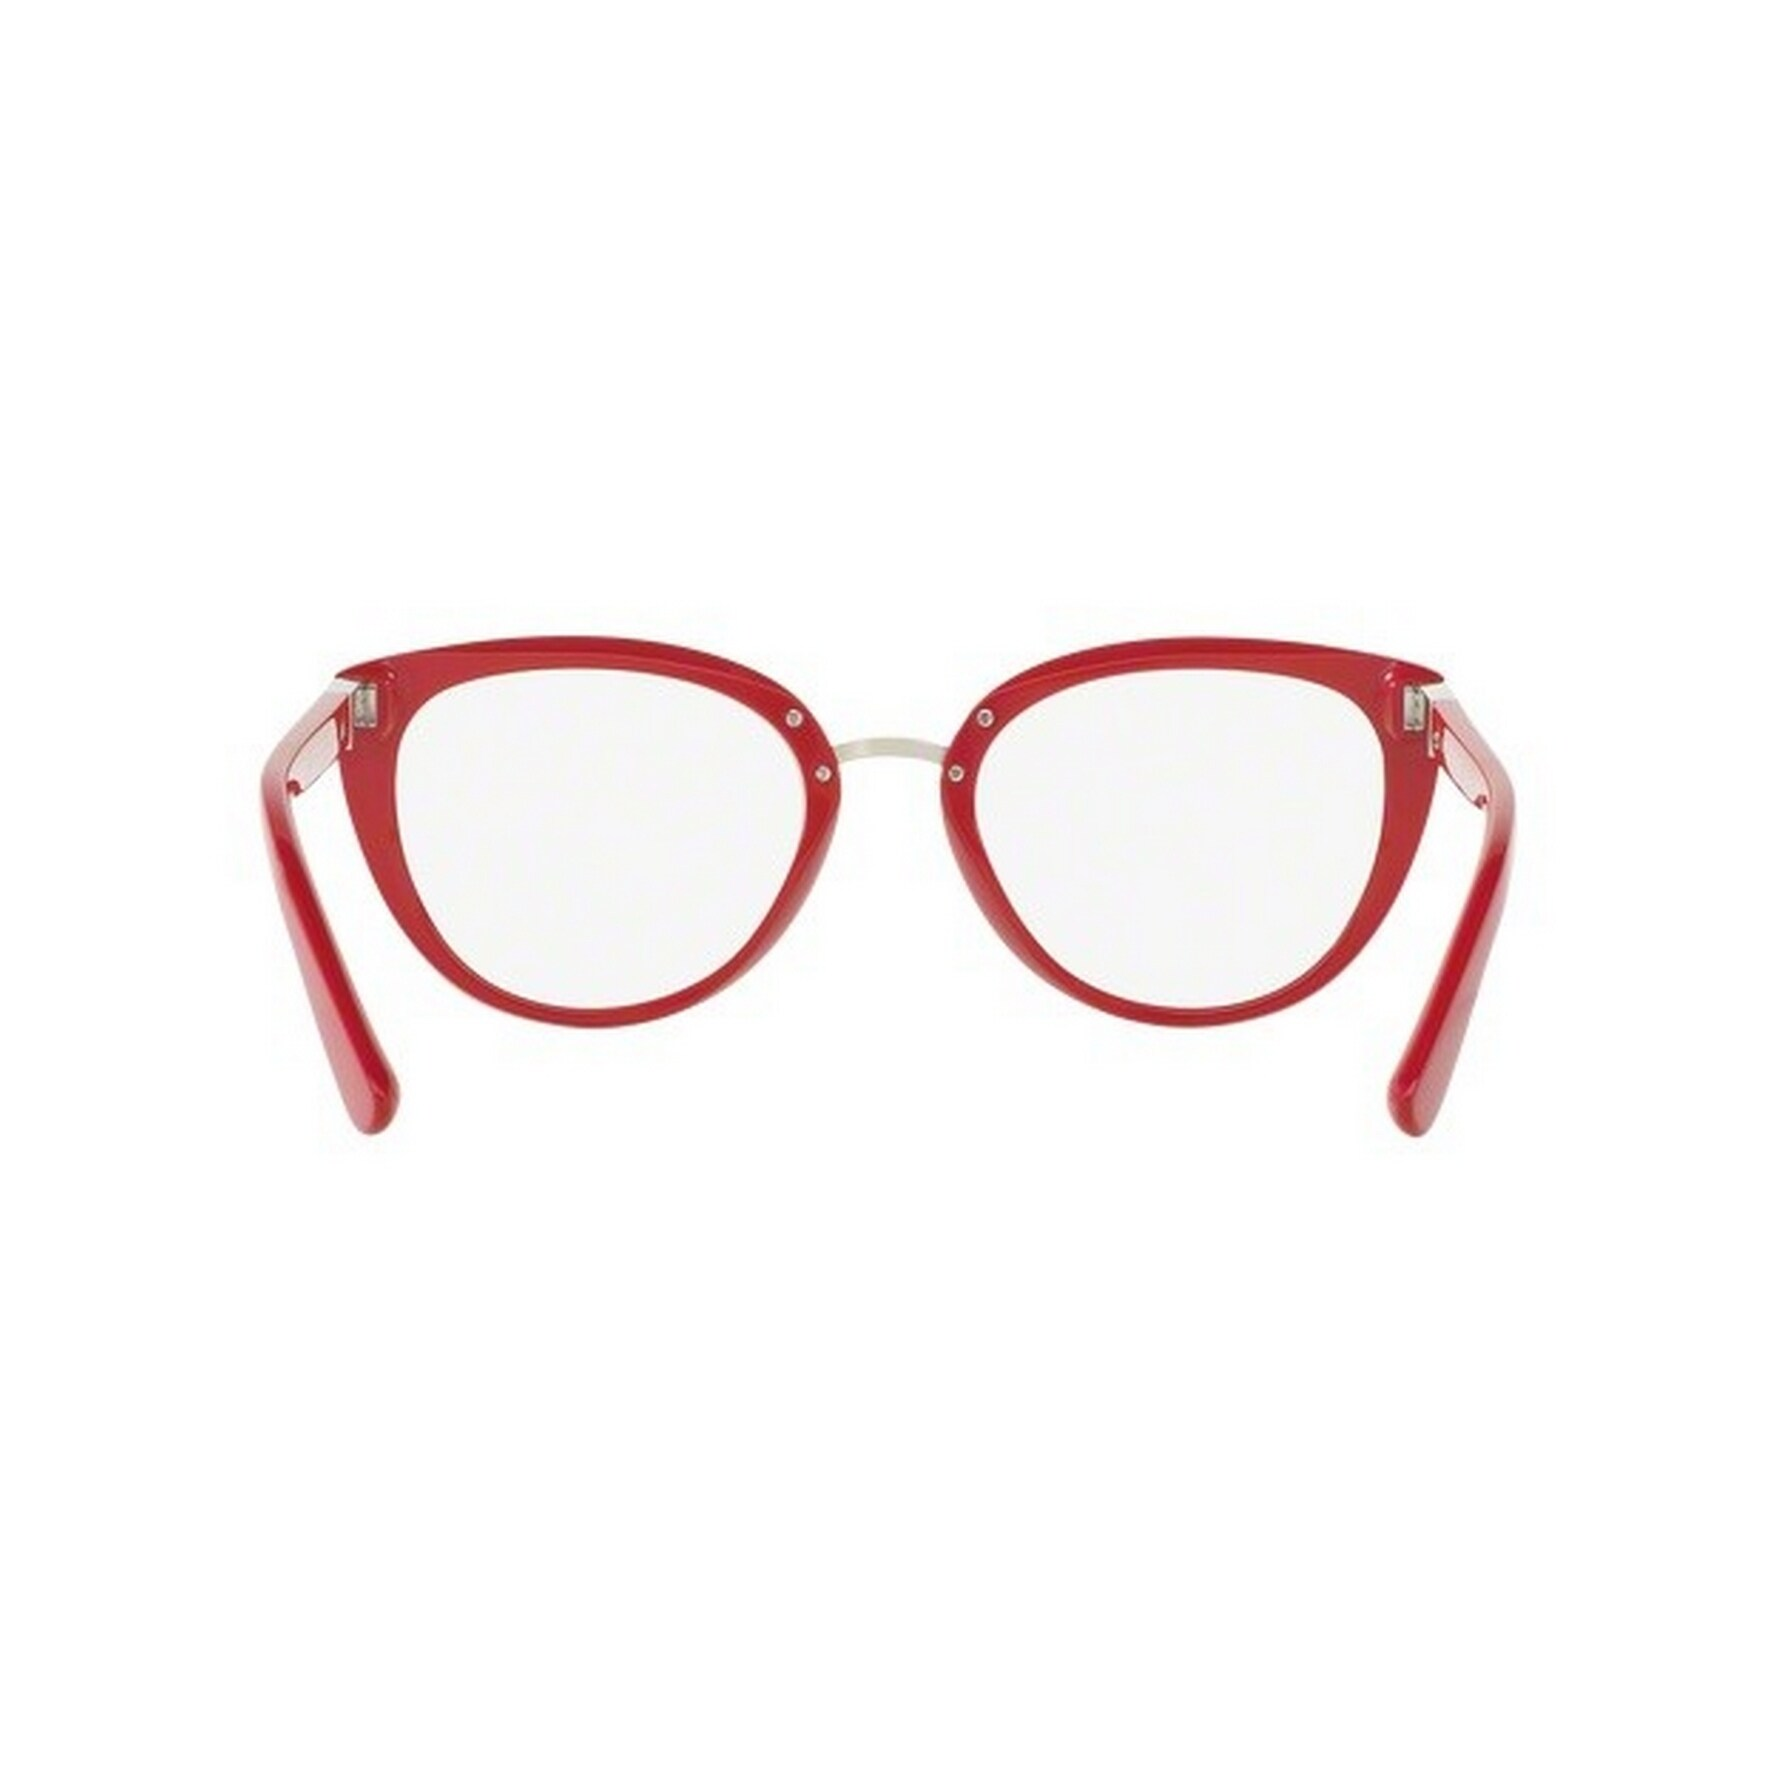 a88ae964c1 Shop Dolce   Gabbana Women s DG3262F 3097 53 Cateye Plastic Purple Clear  Eyeglasses - Free Shipping Today - Overstock - 14780615